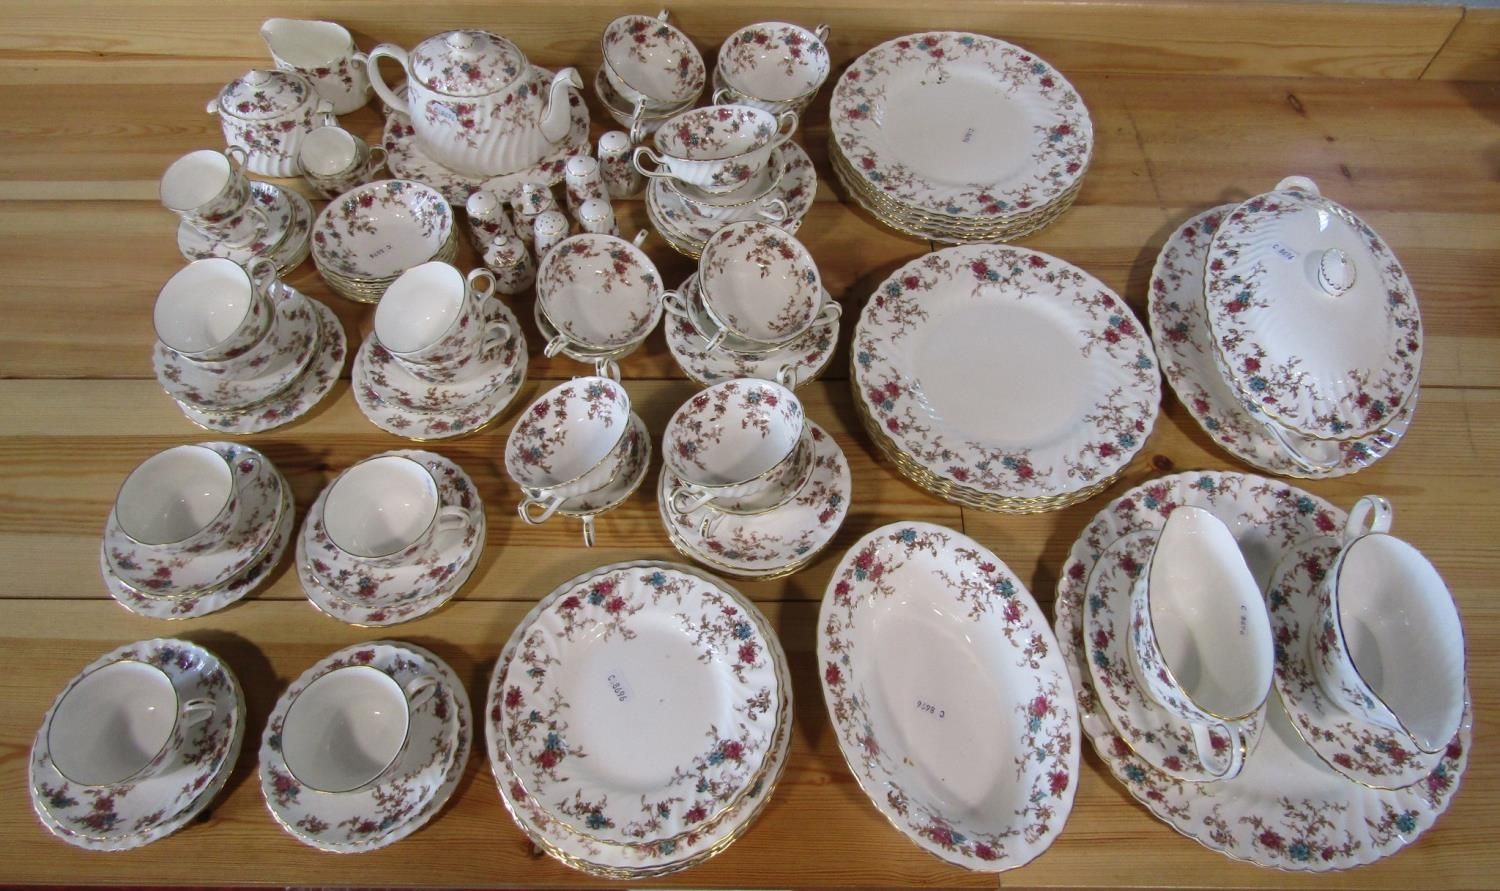 An extensive collection of Minton Ancestral pattern wares including a two handled tureen and - Bild 2 aus 3